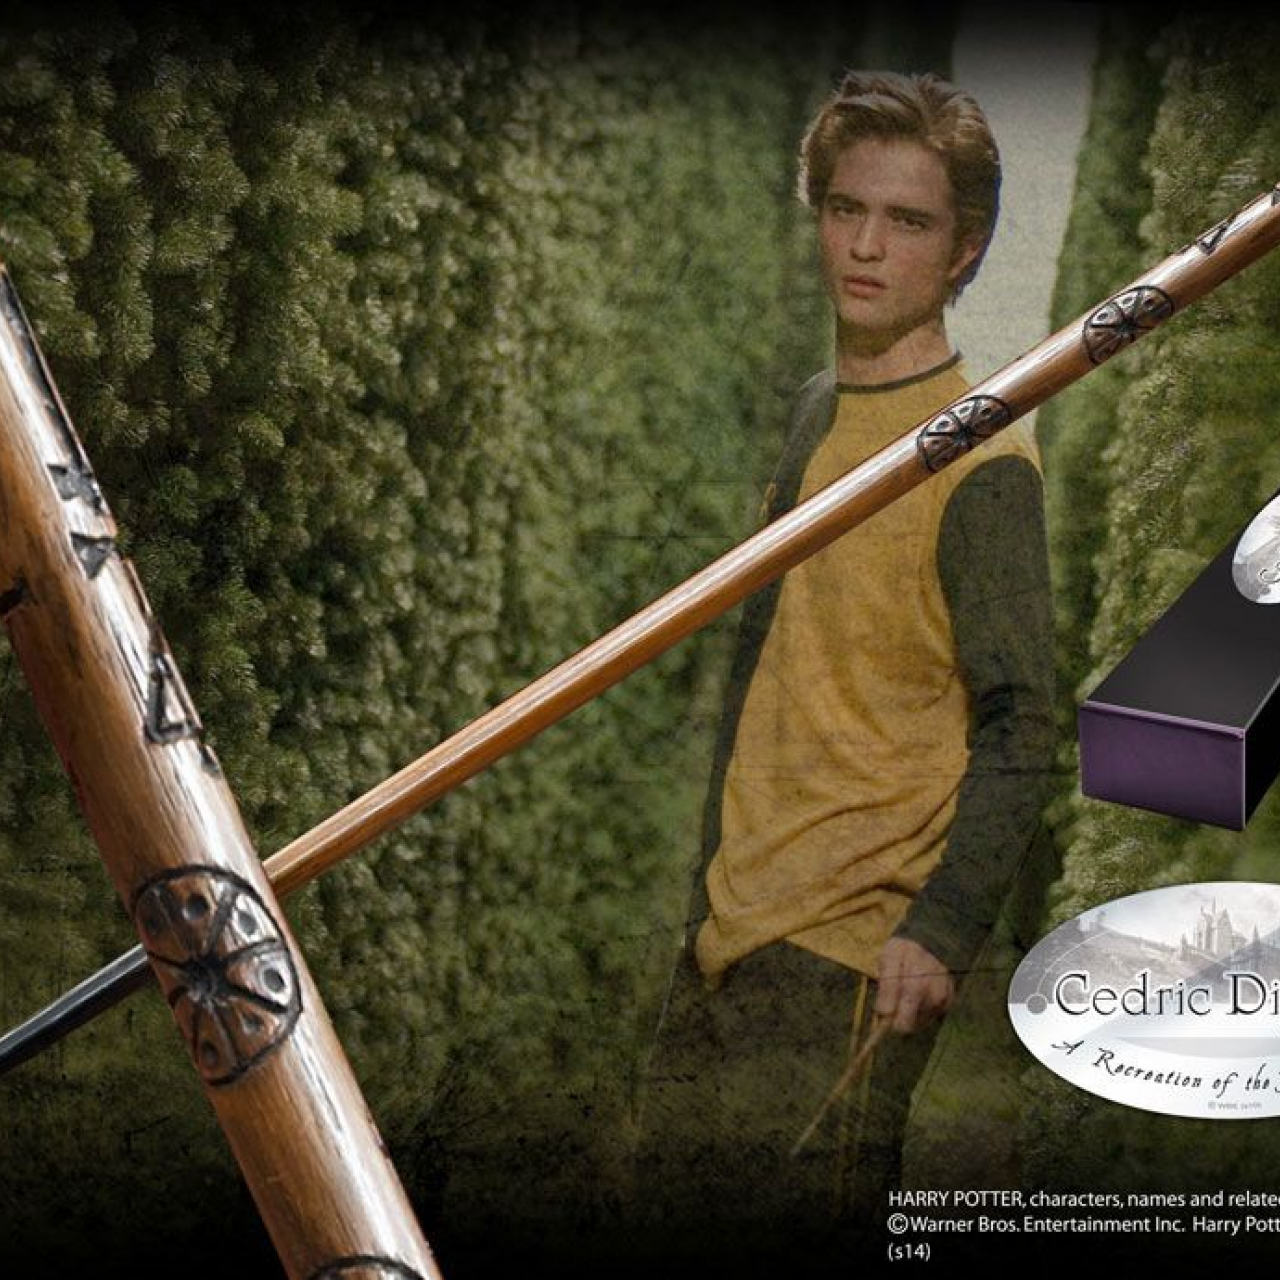 Harry Potter Wand Cedric Diggory (Character-Edition)